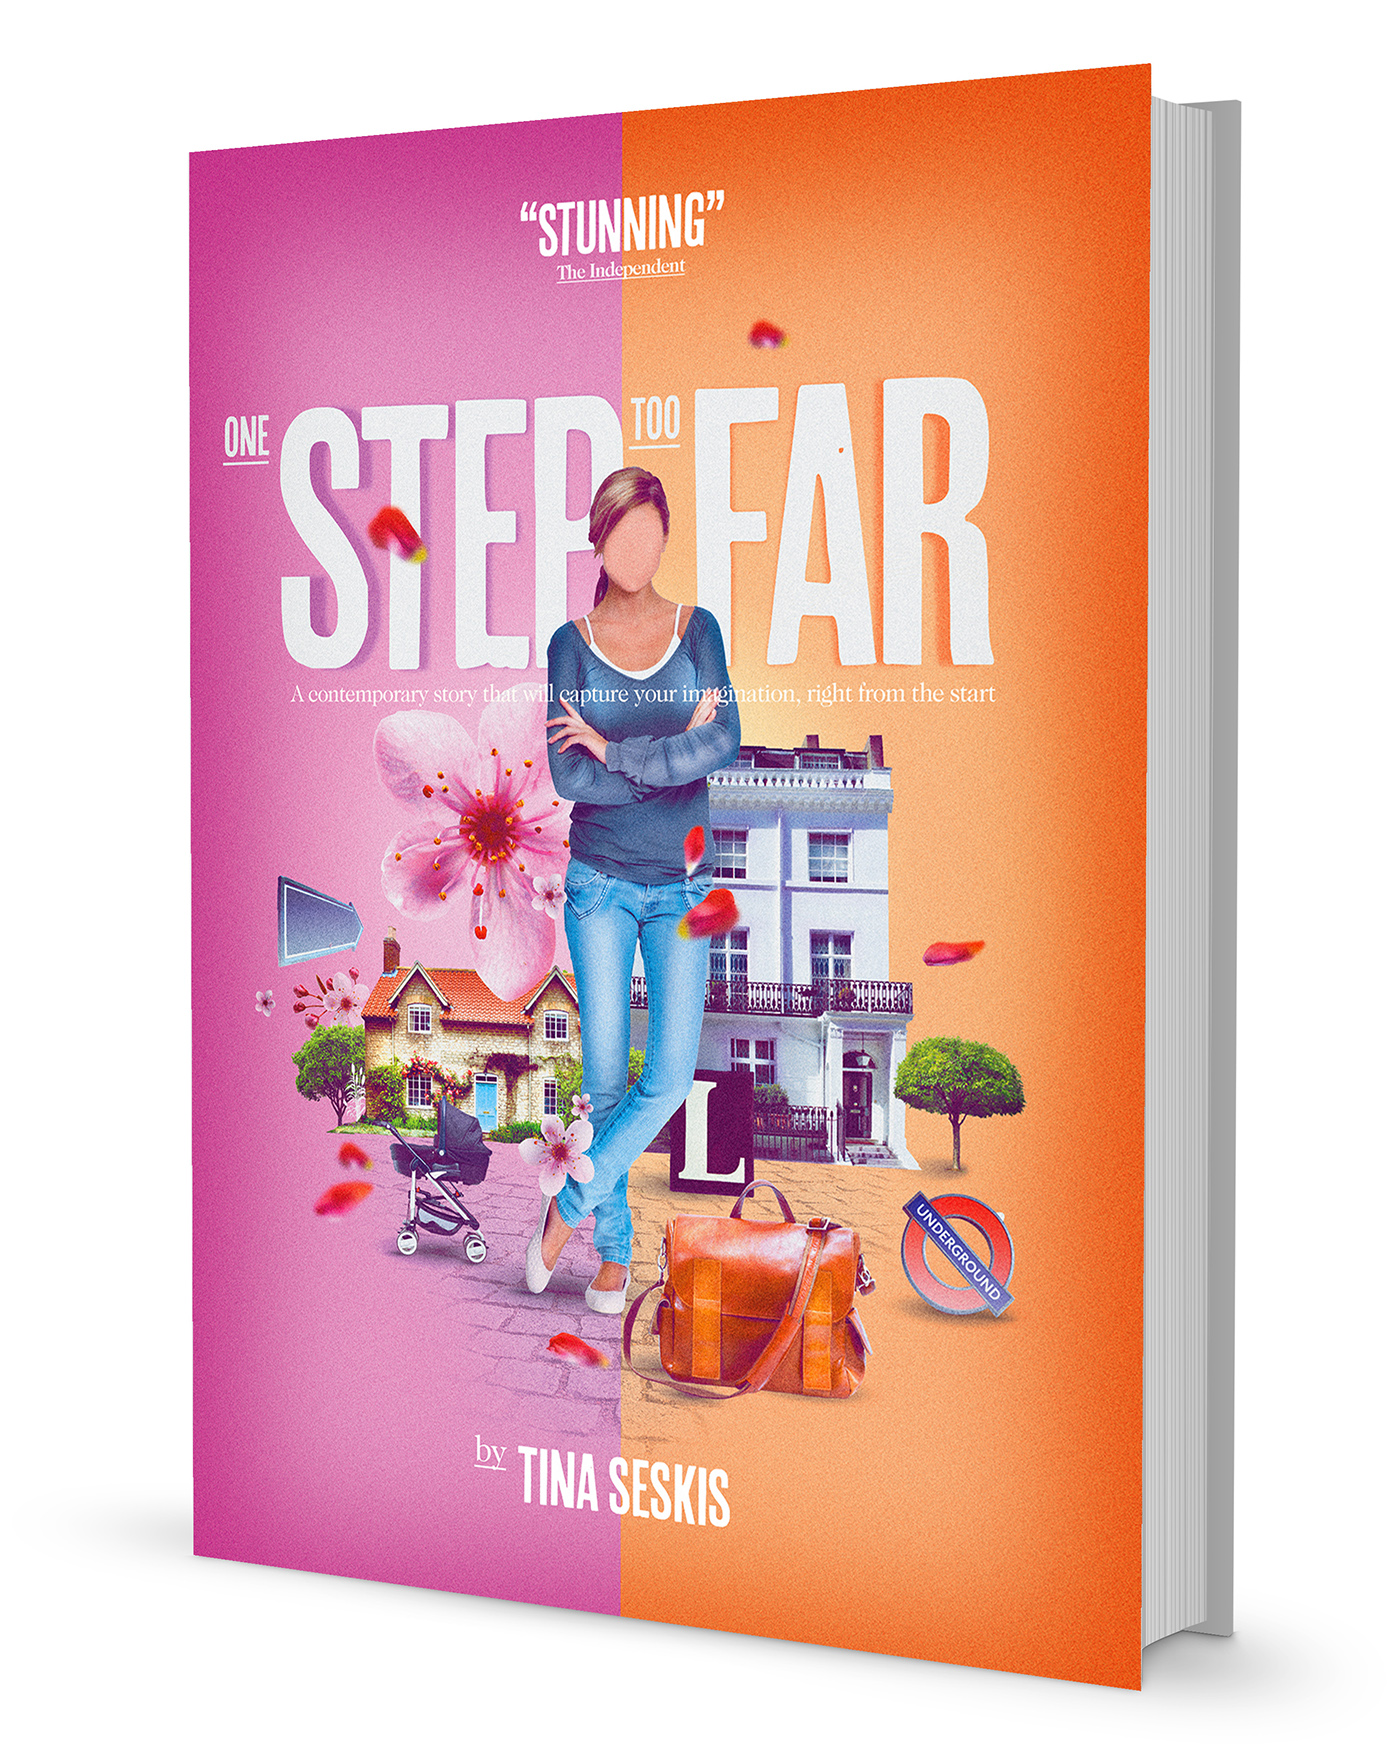 Book Cover Design Jobs London ~ One step too far book cover on behance